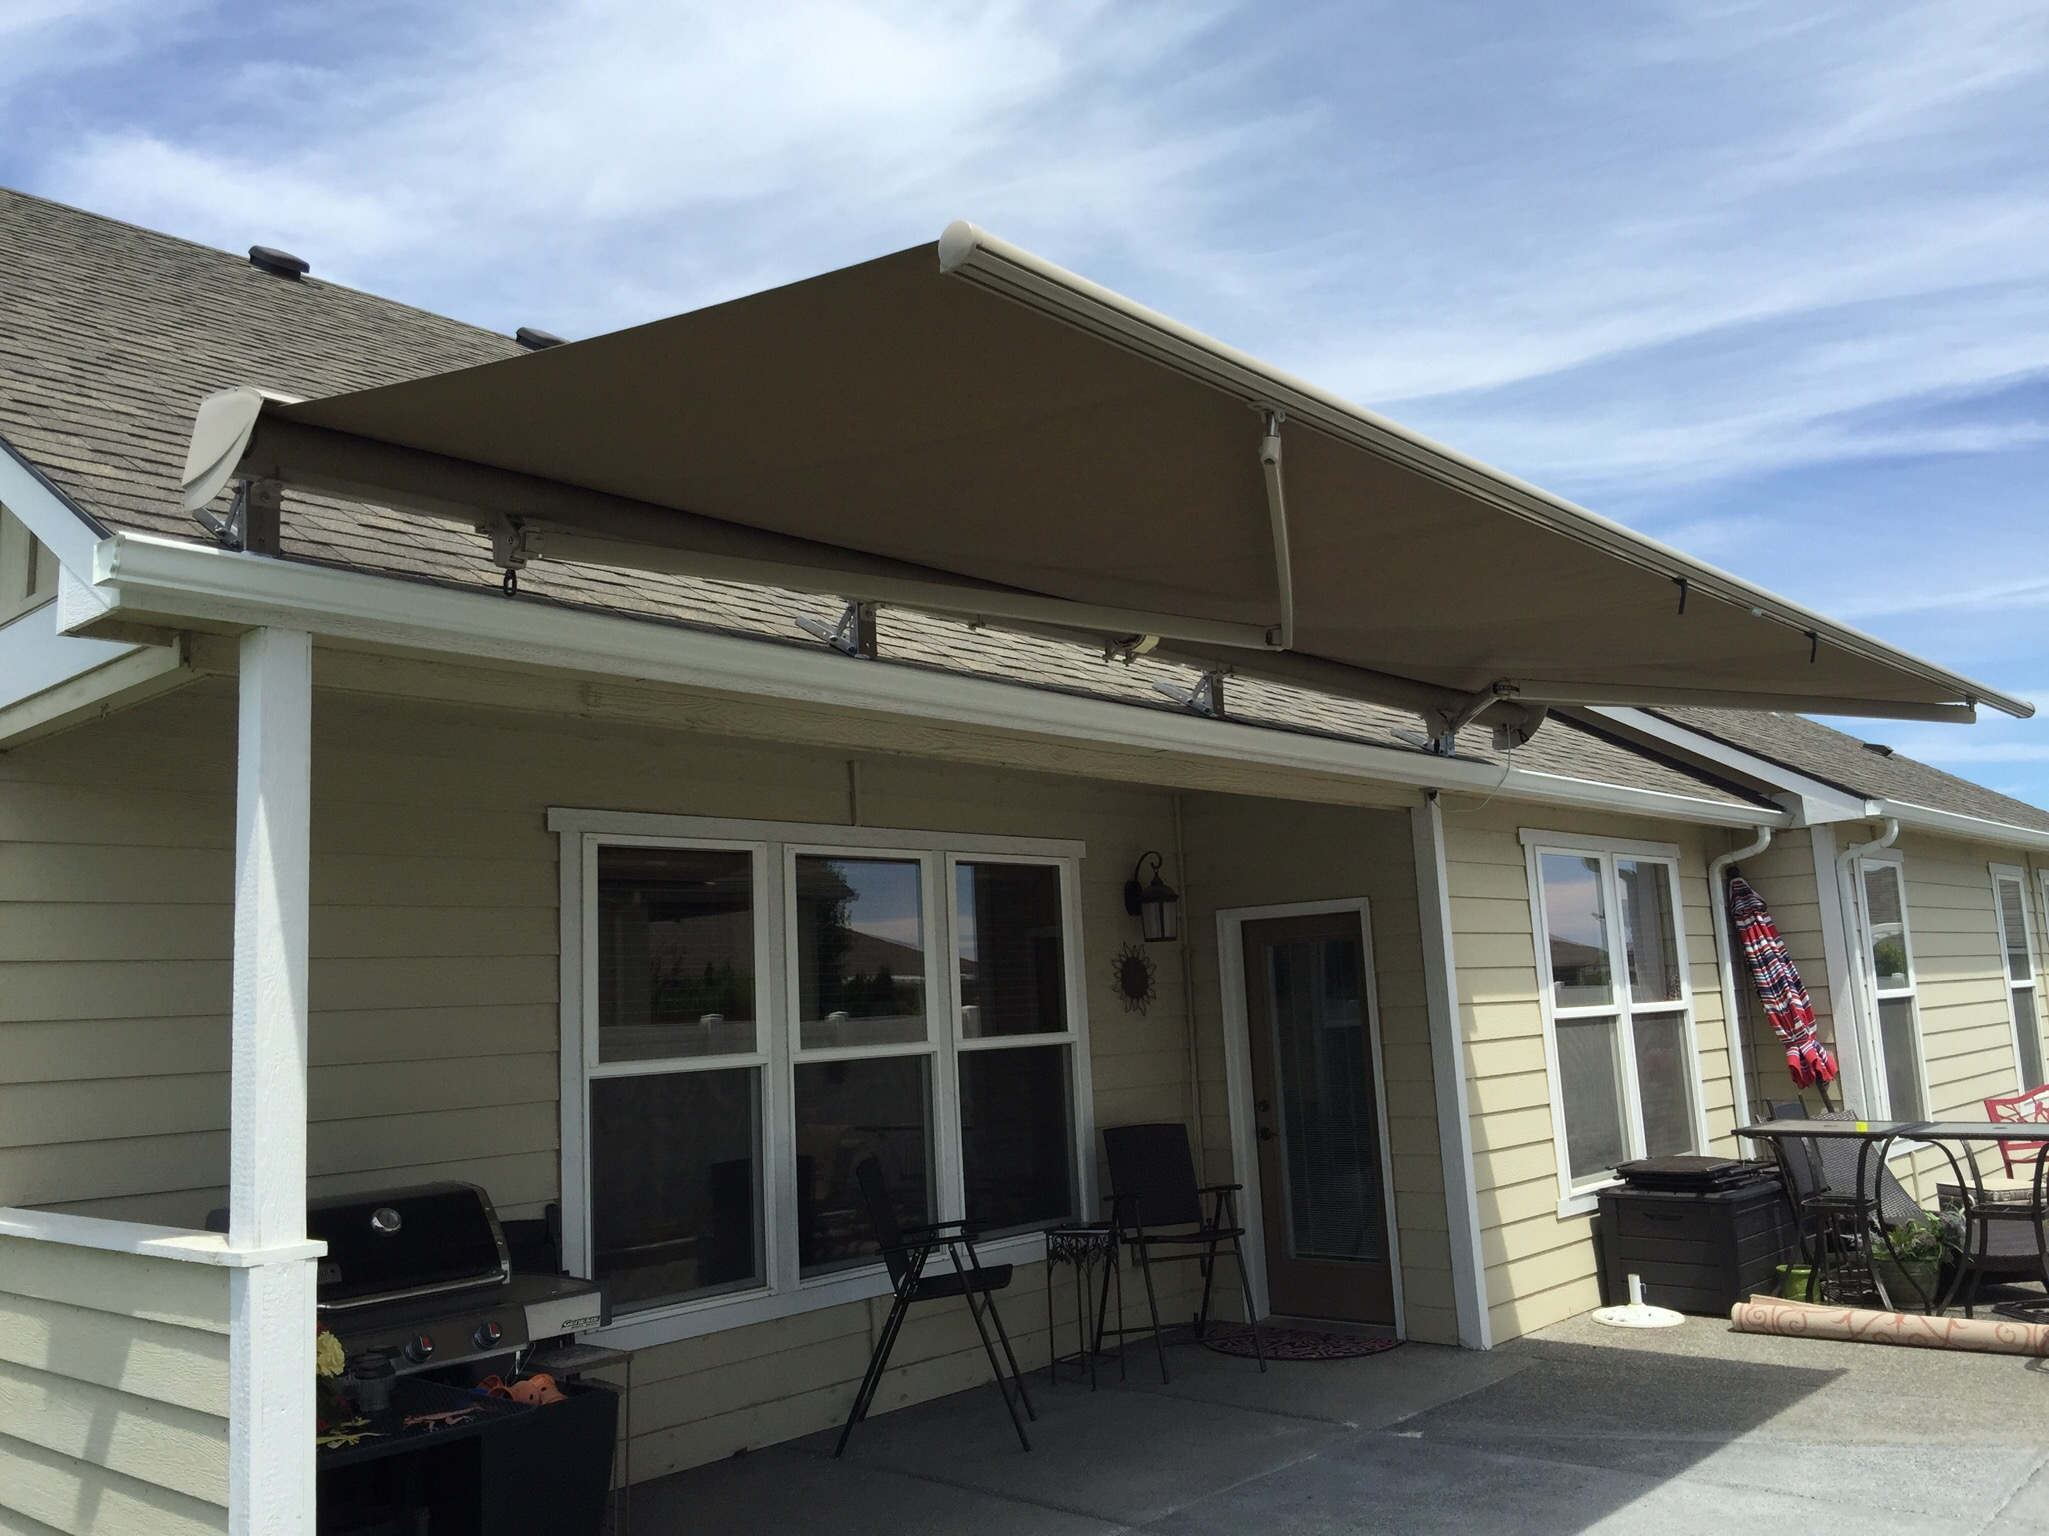 express roof glass services need and roofs a awning awnings or